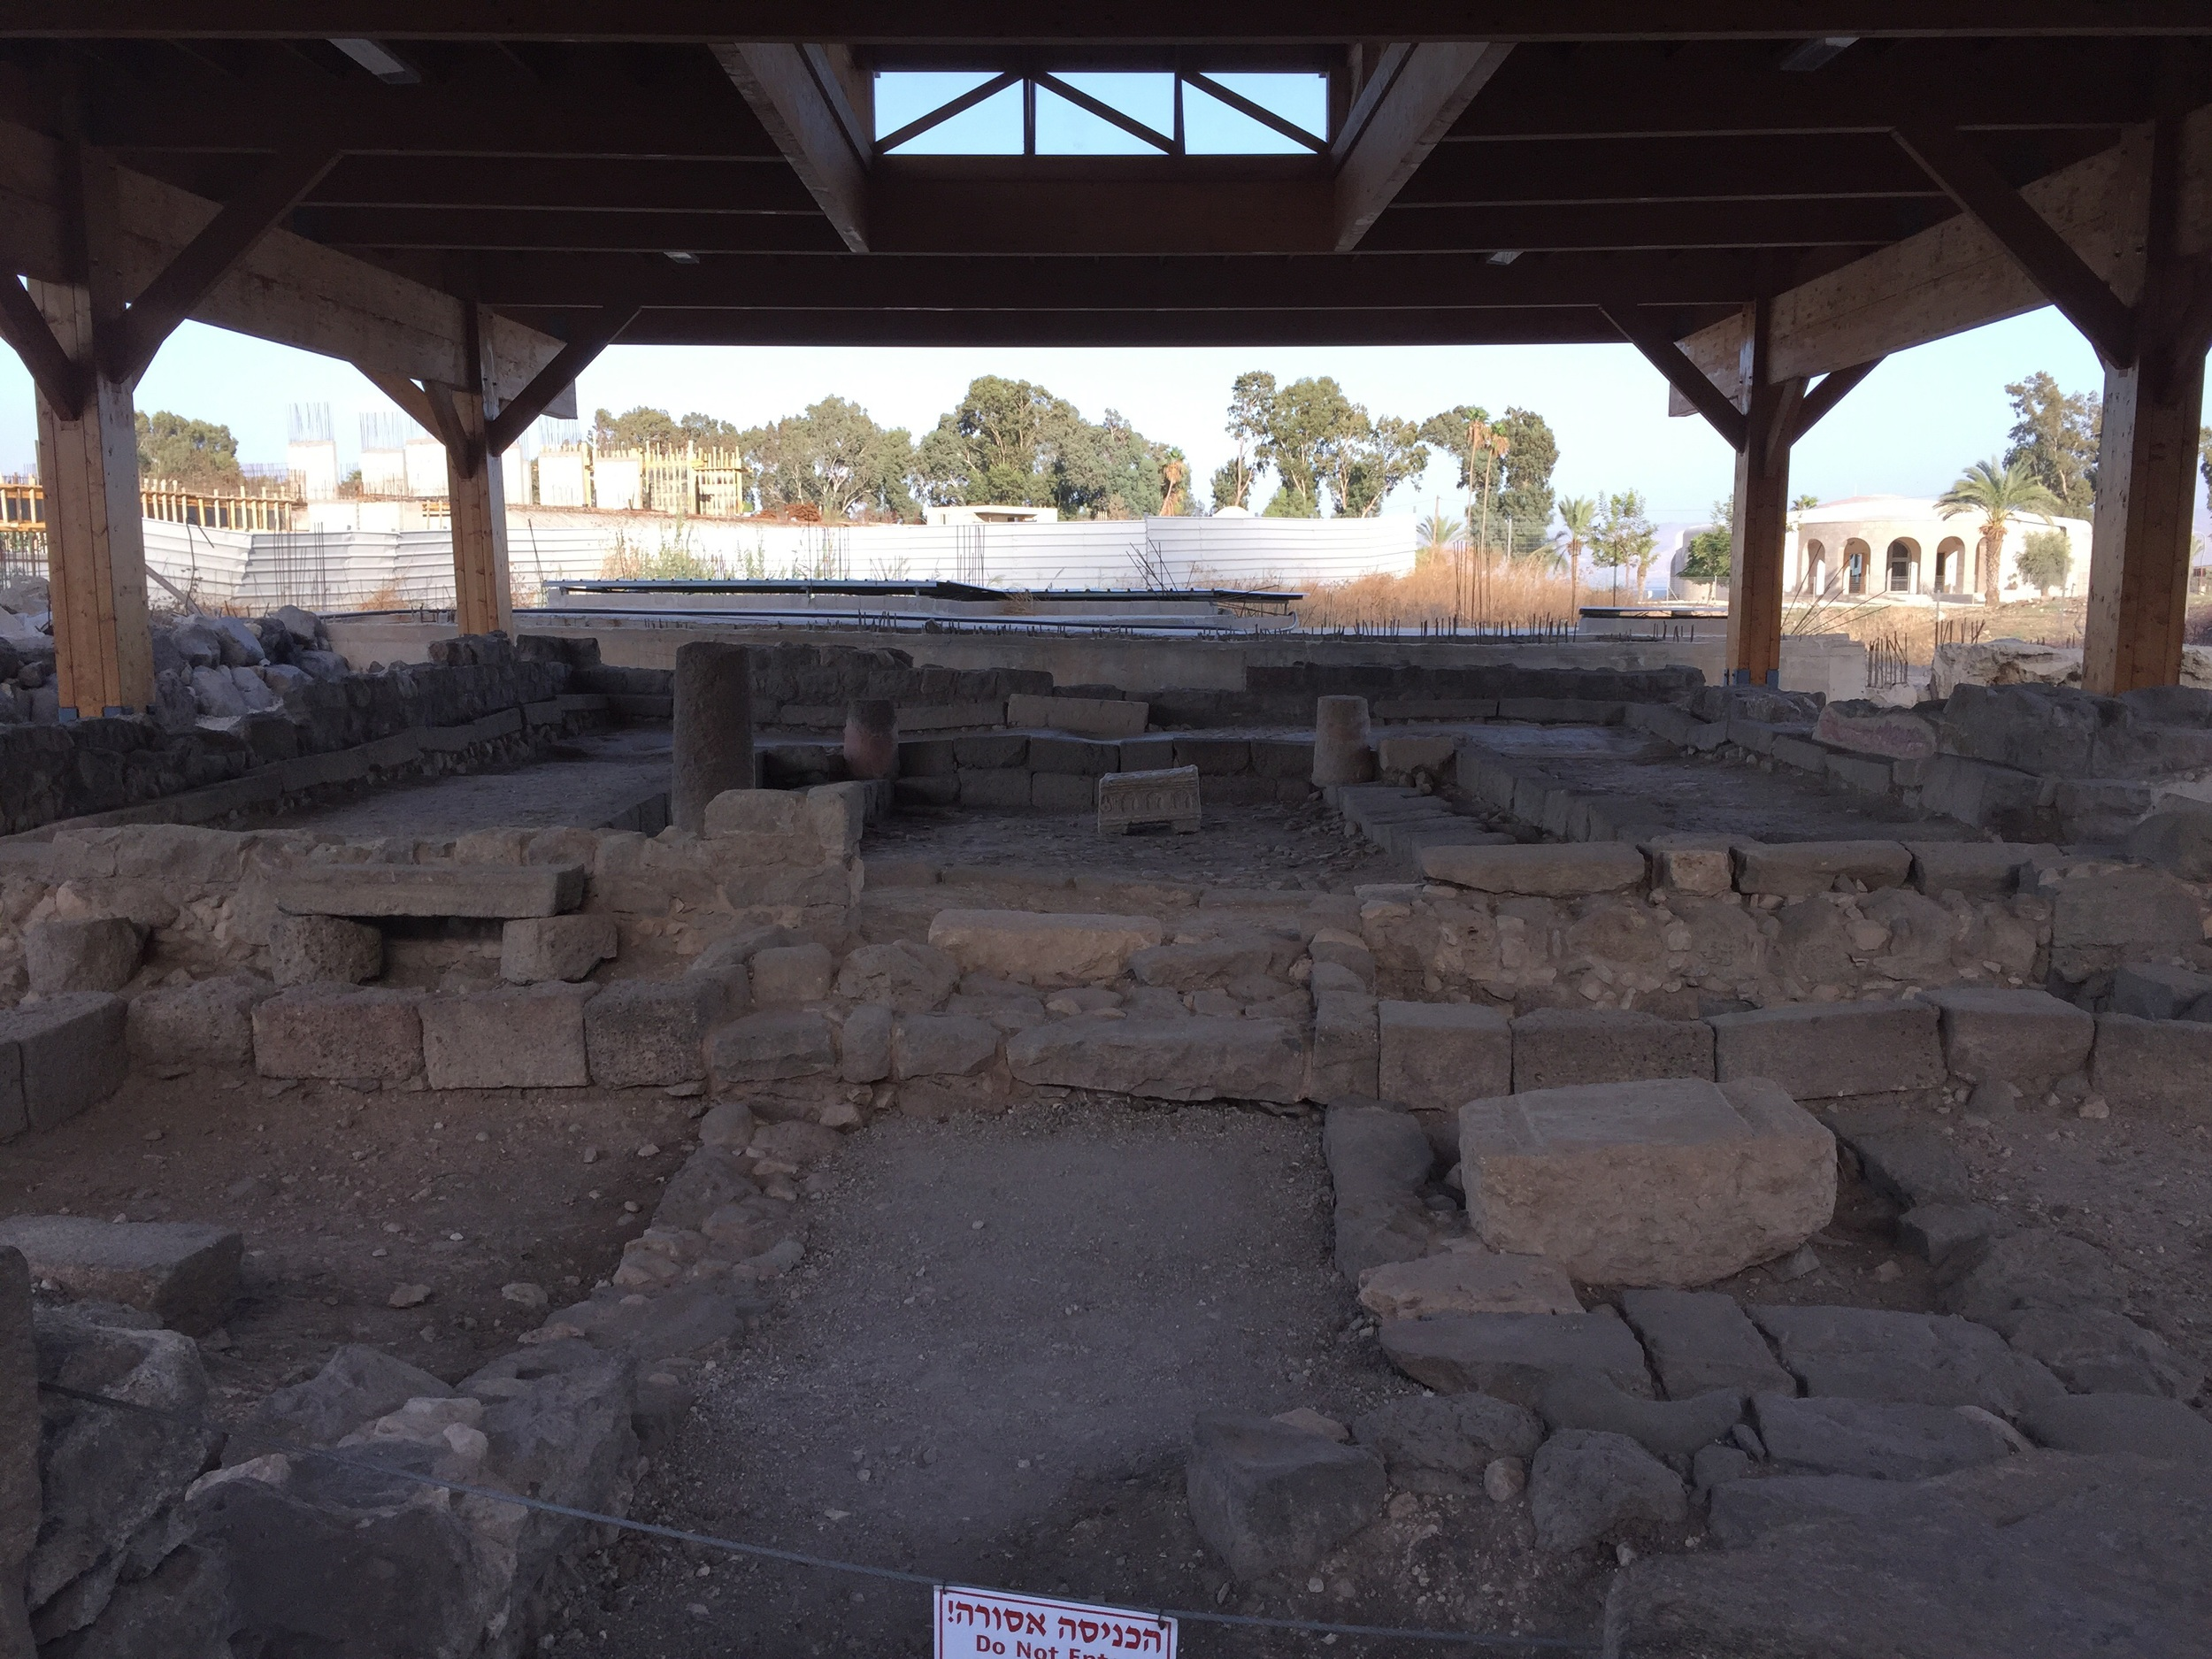 The first century synagogue of Magdala. The Magdala Stone is the lighter colored, small box in the back of the synagogue. (This Magdala Stone is a replica. The original is being temporarily kept at a museum until this original site becomes more secure.) They speculate that the stone is the base of a first century podium, which would have been used to assist those reading the Torah.